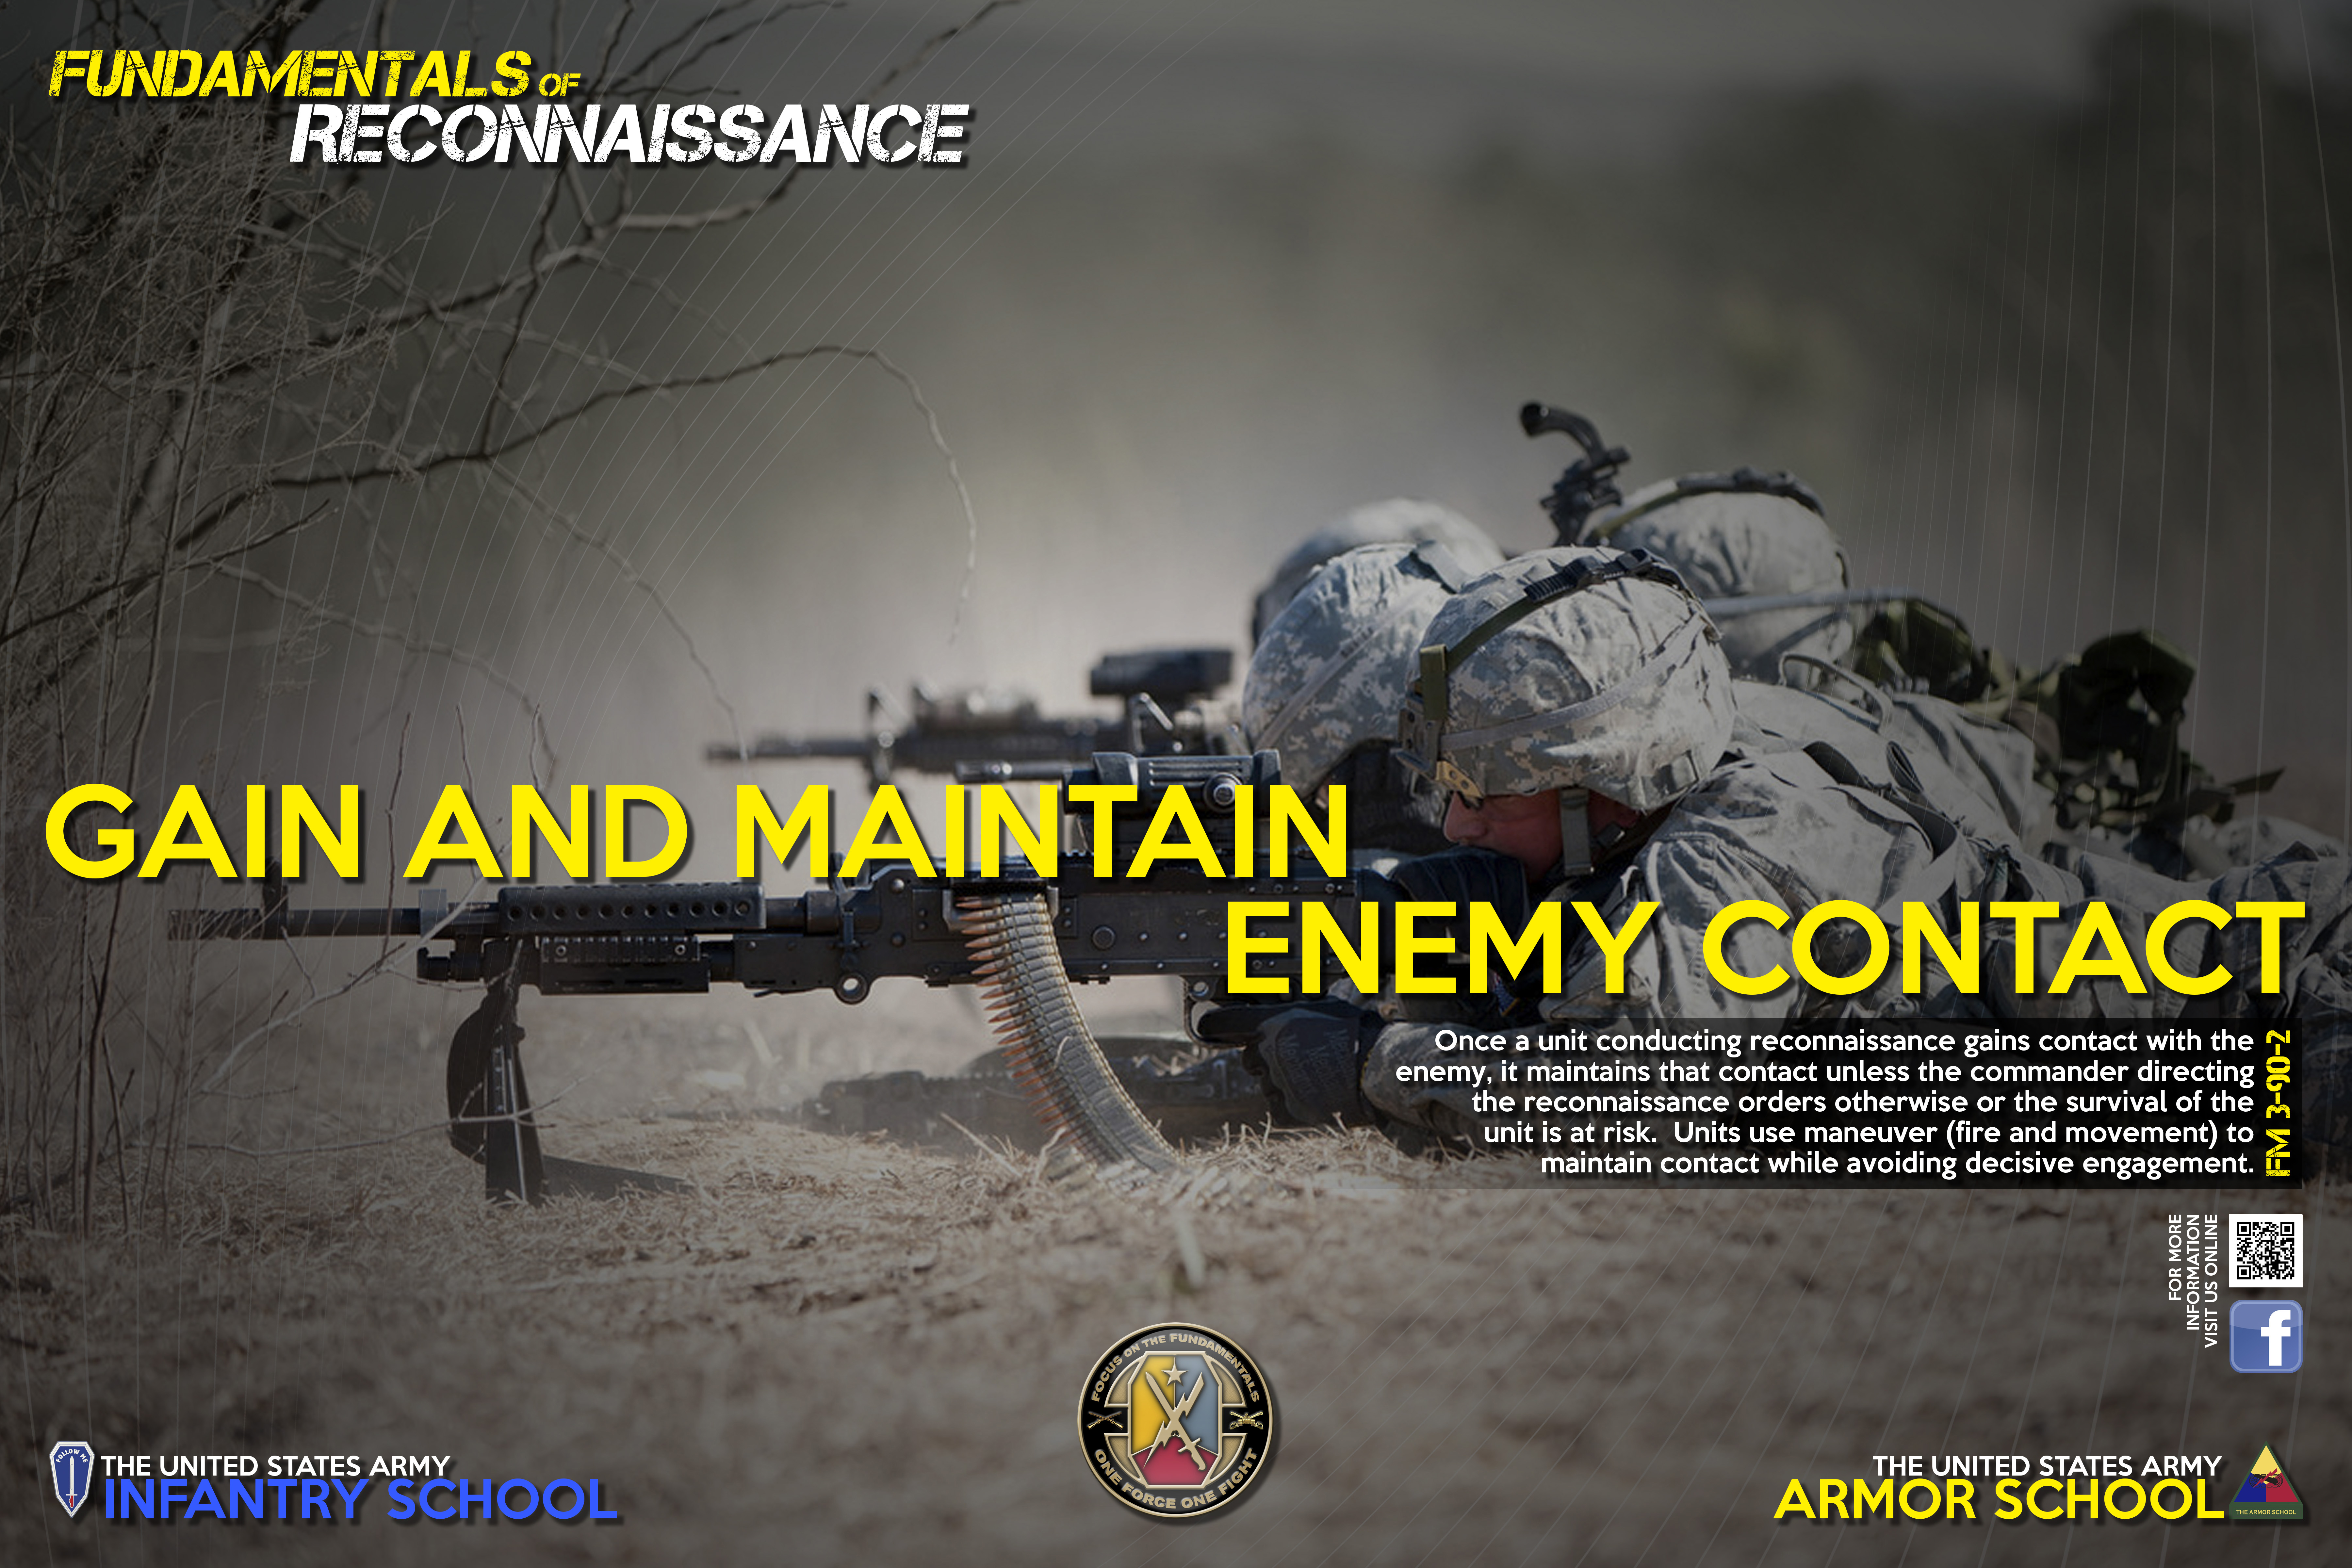 R-4 GAIN AND MAINTAIN ENEMY CONTACT